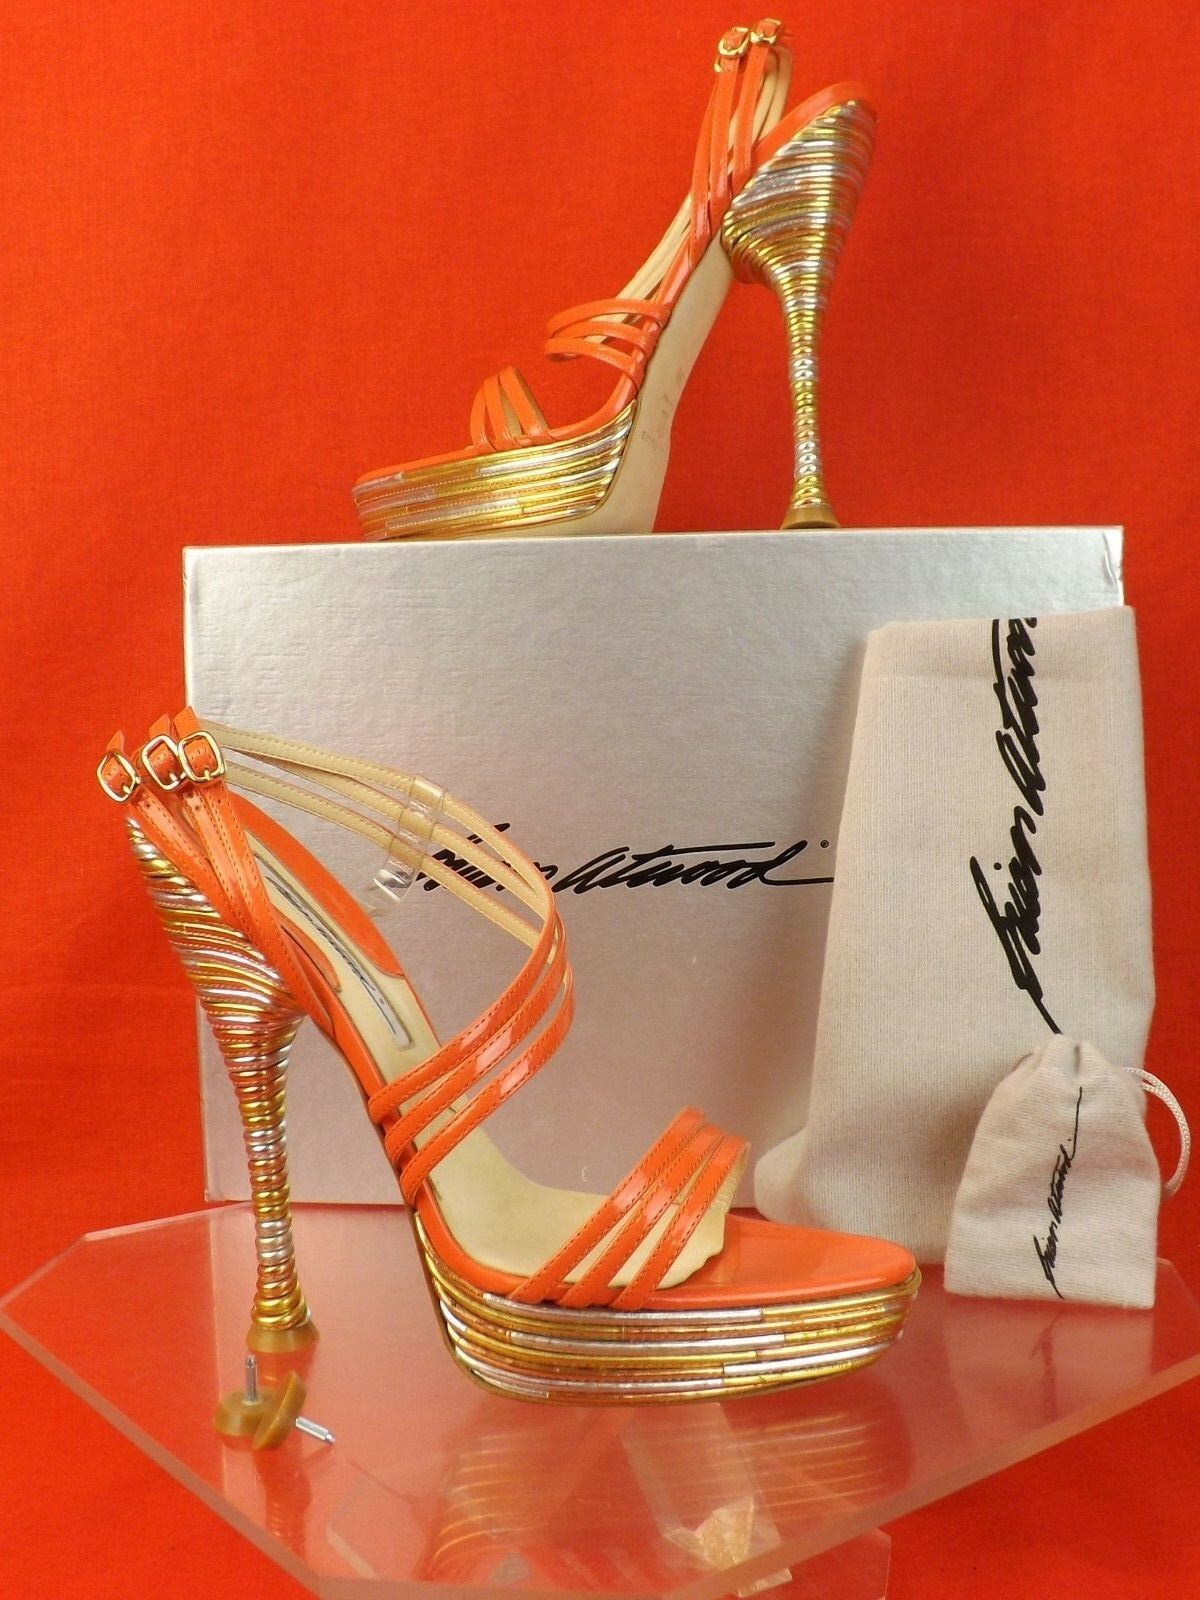 NIB BRIAN ATWOOD RENE CORAL PATENT LEATHER PIPED PLATFORM SANDALS PUMPS 39.5 K